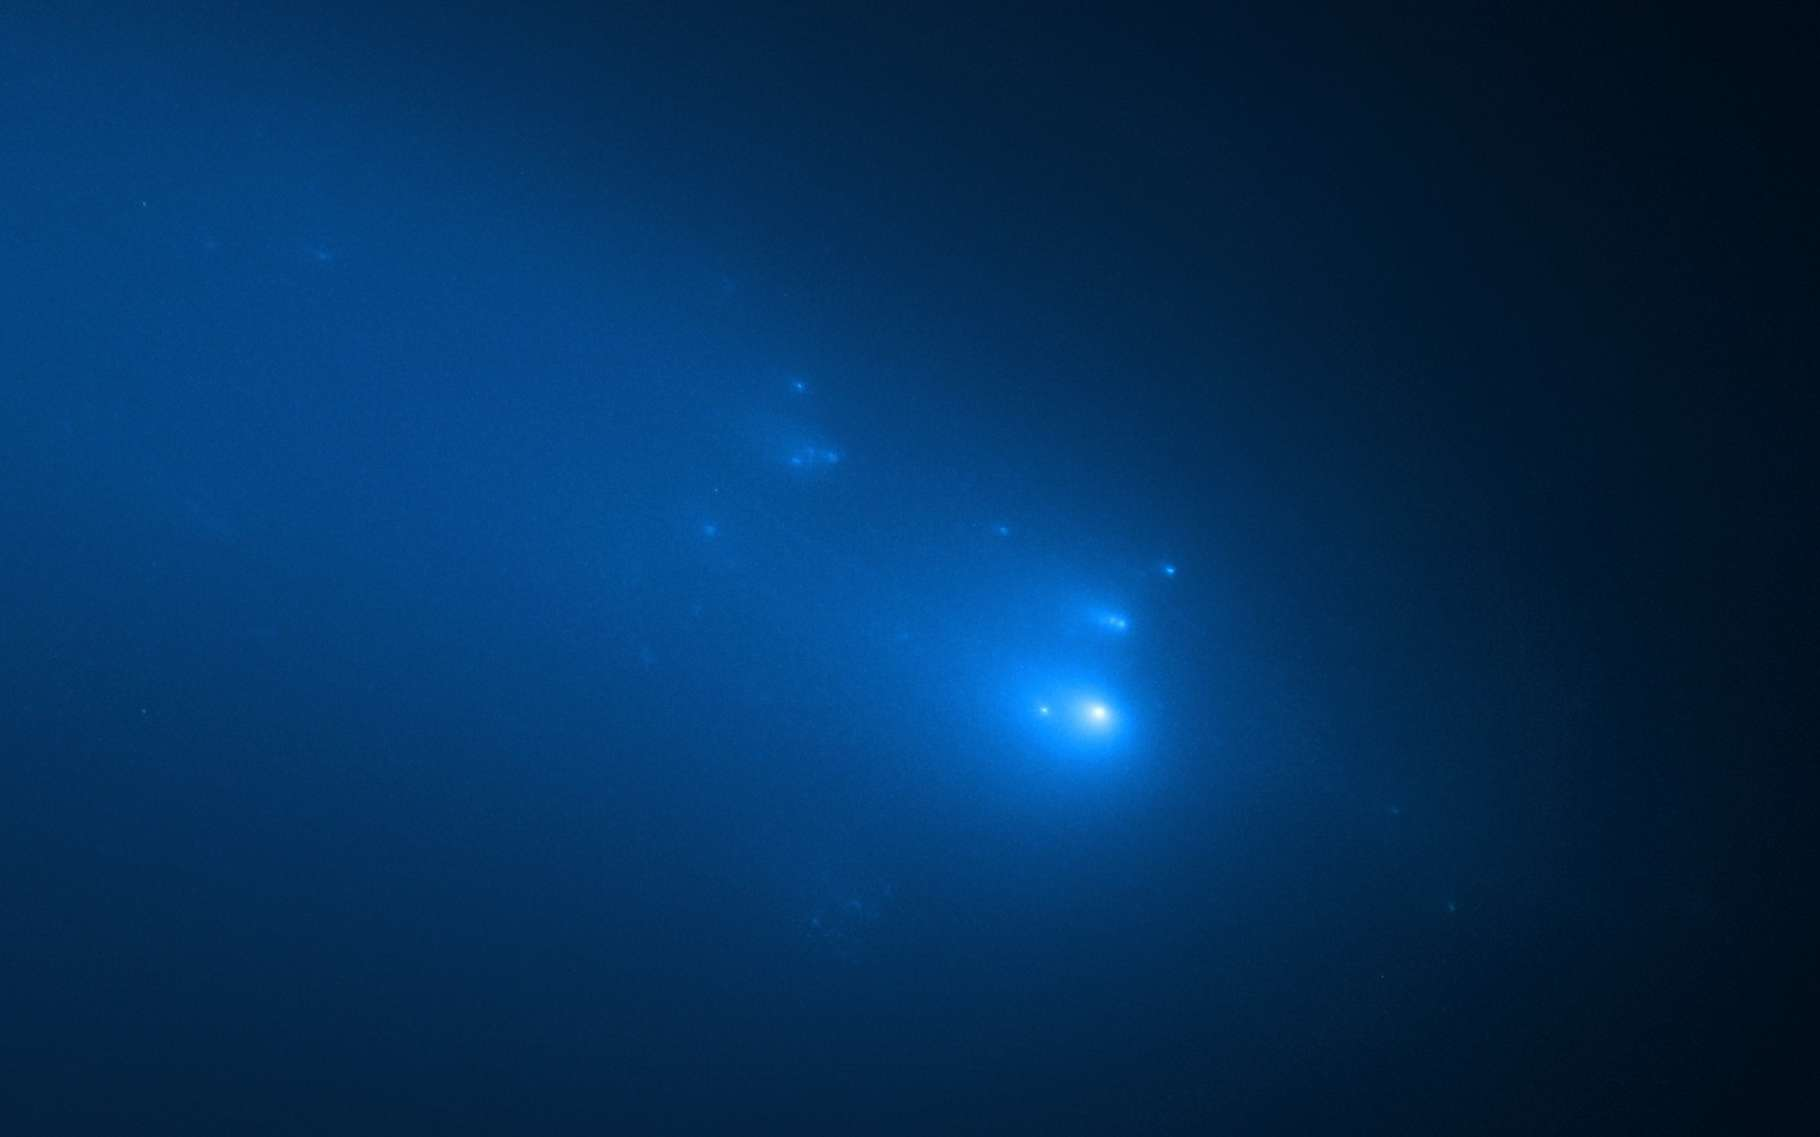 Le télescope spatial Hubble offre aux astronomes les images les plus nettes à ce jour de la fragmentation de la comète Atlas. © Nasa, ESA, D. Jewitt (UCLA), Q. Ye (University of Maryland)